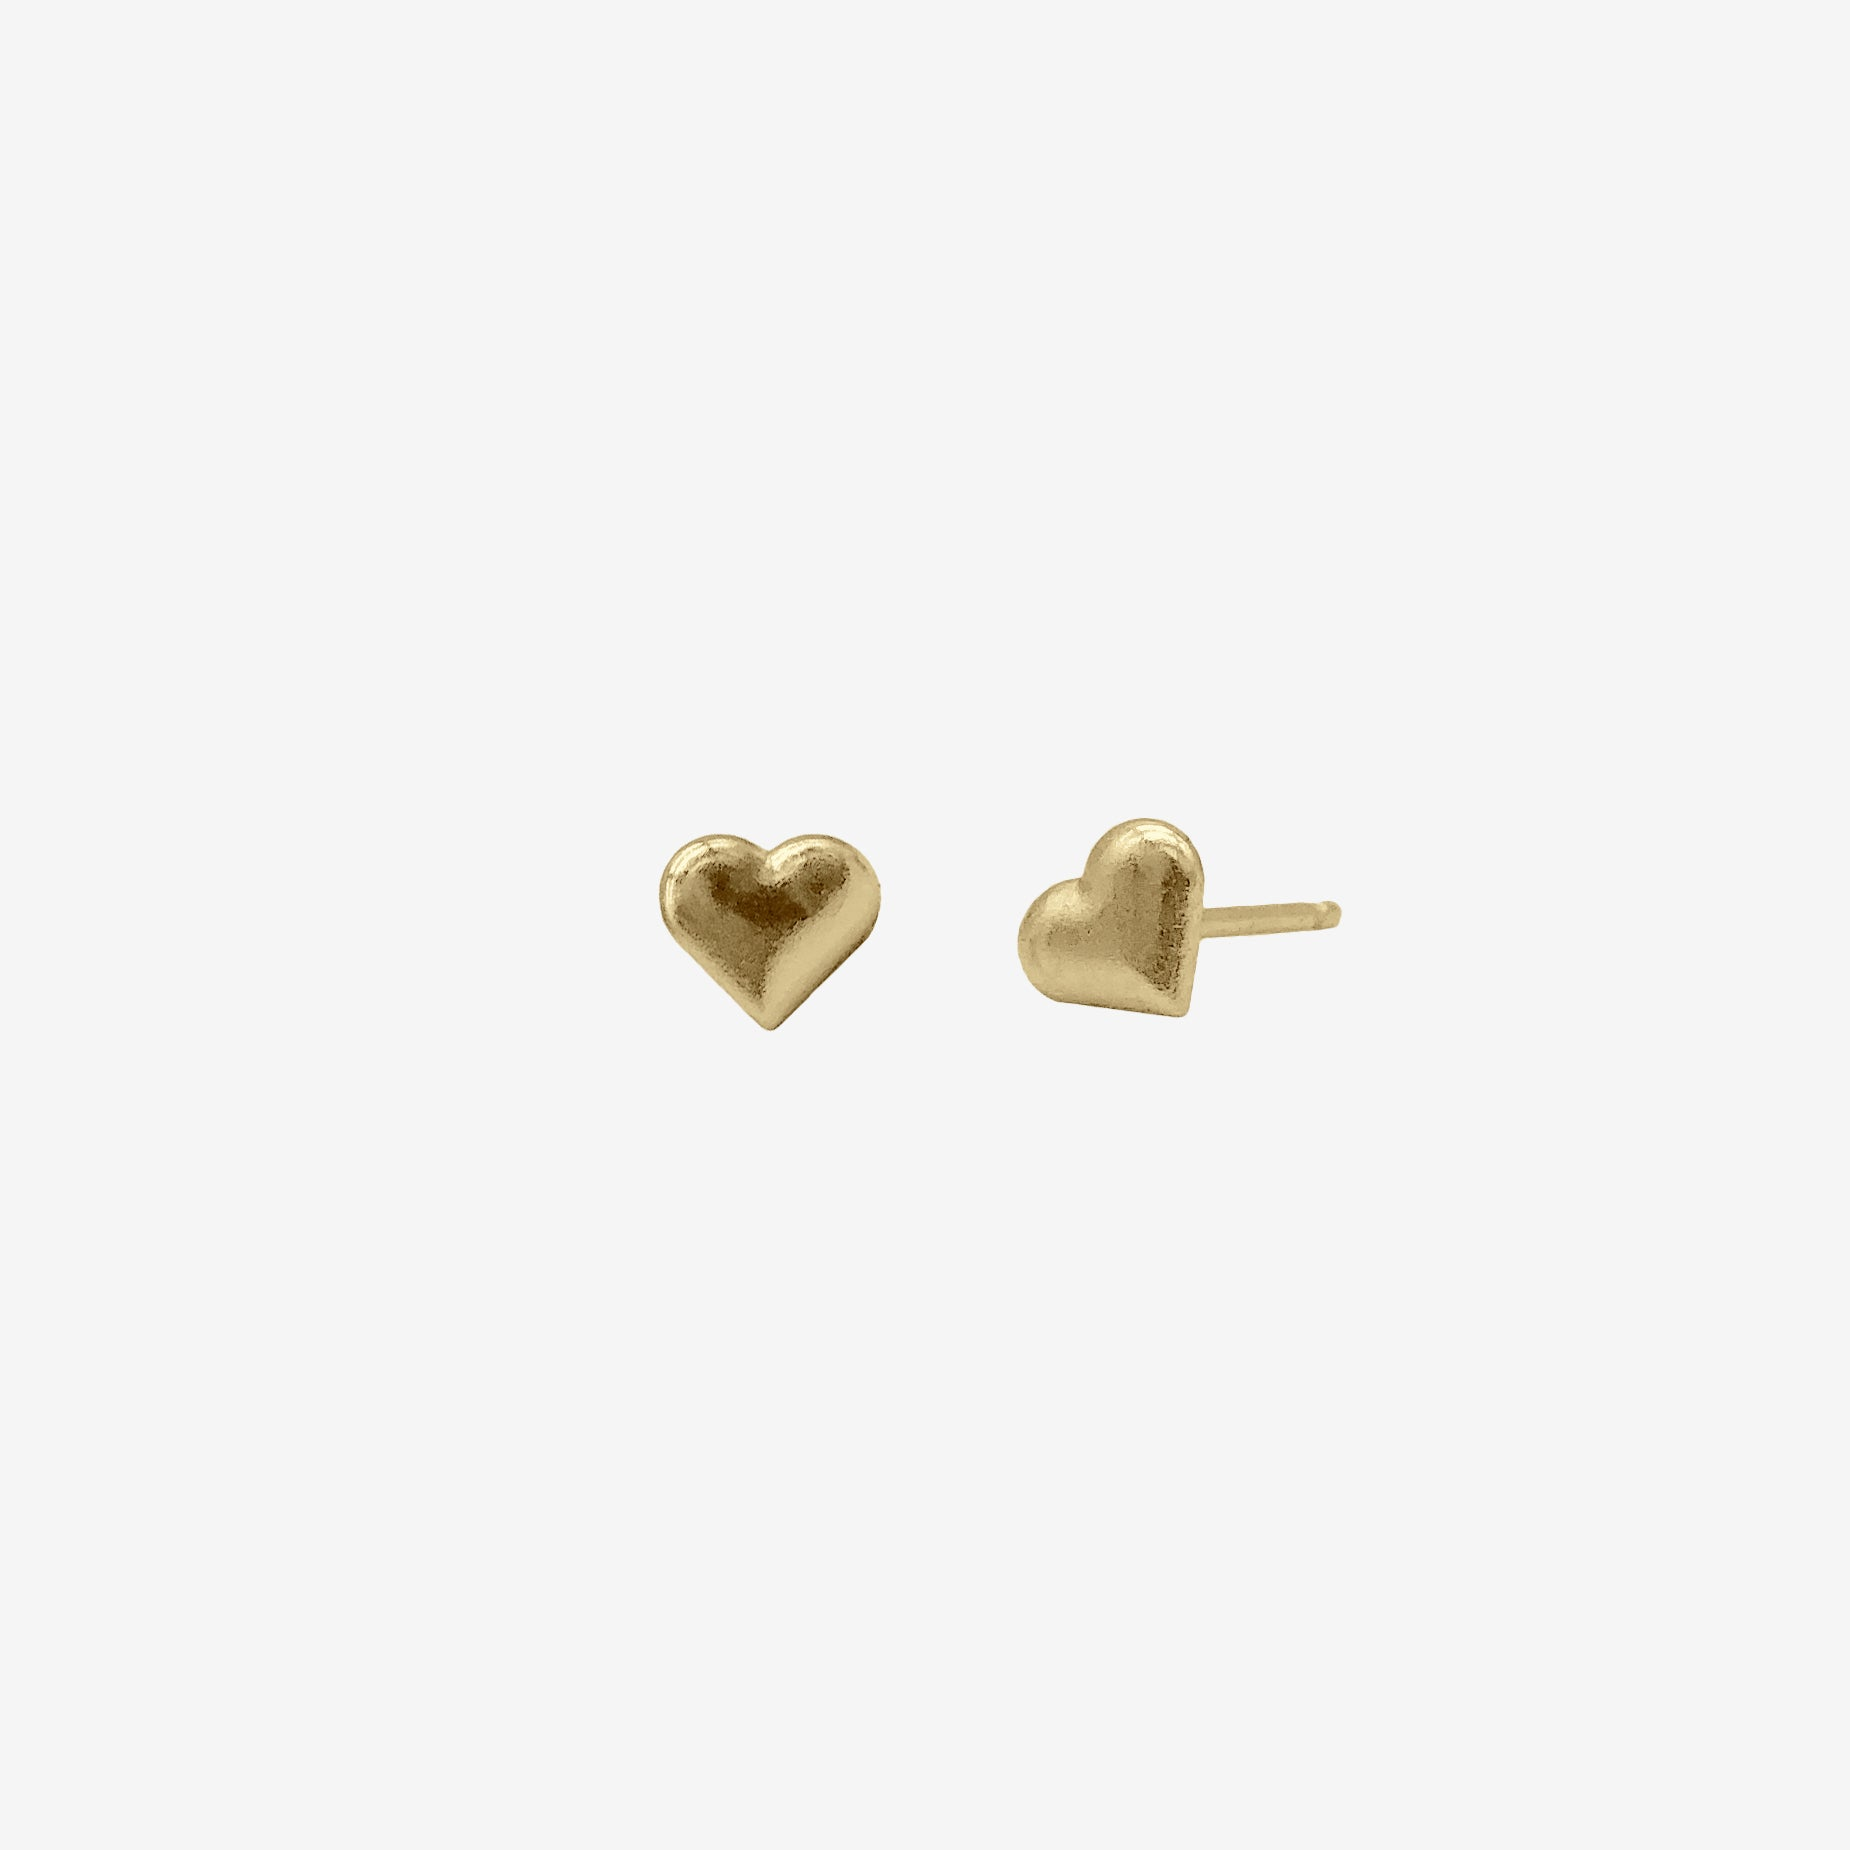 14k Gold Vermeil Heart Earring crafted by women transitioning out of homelessness using 100% recycled metals